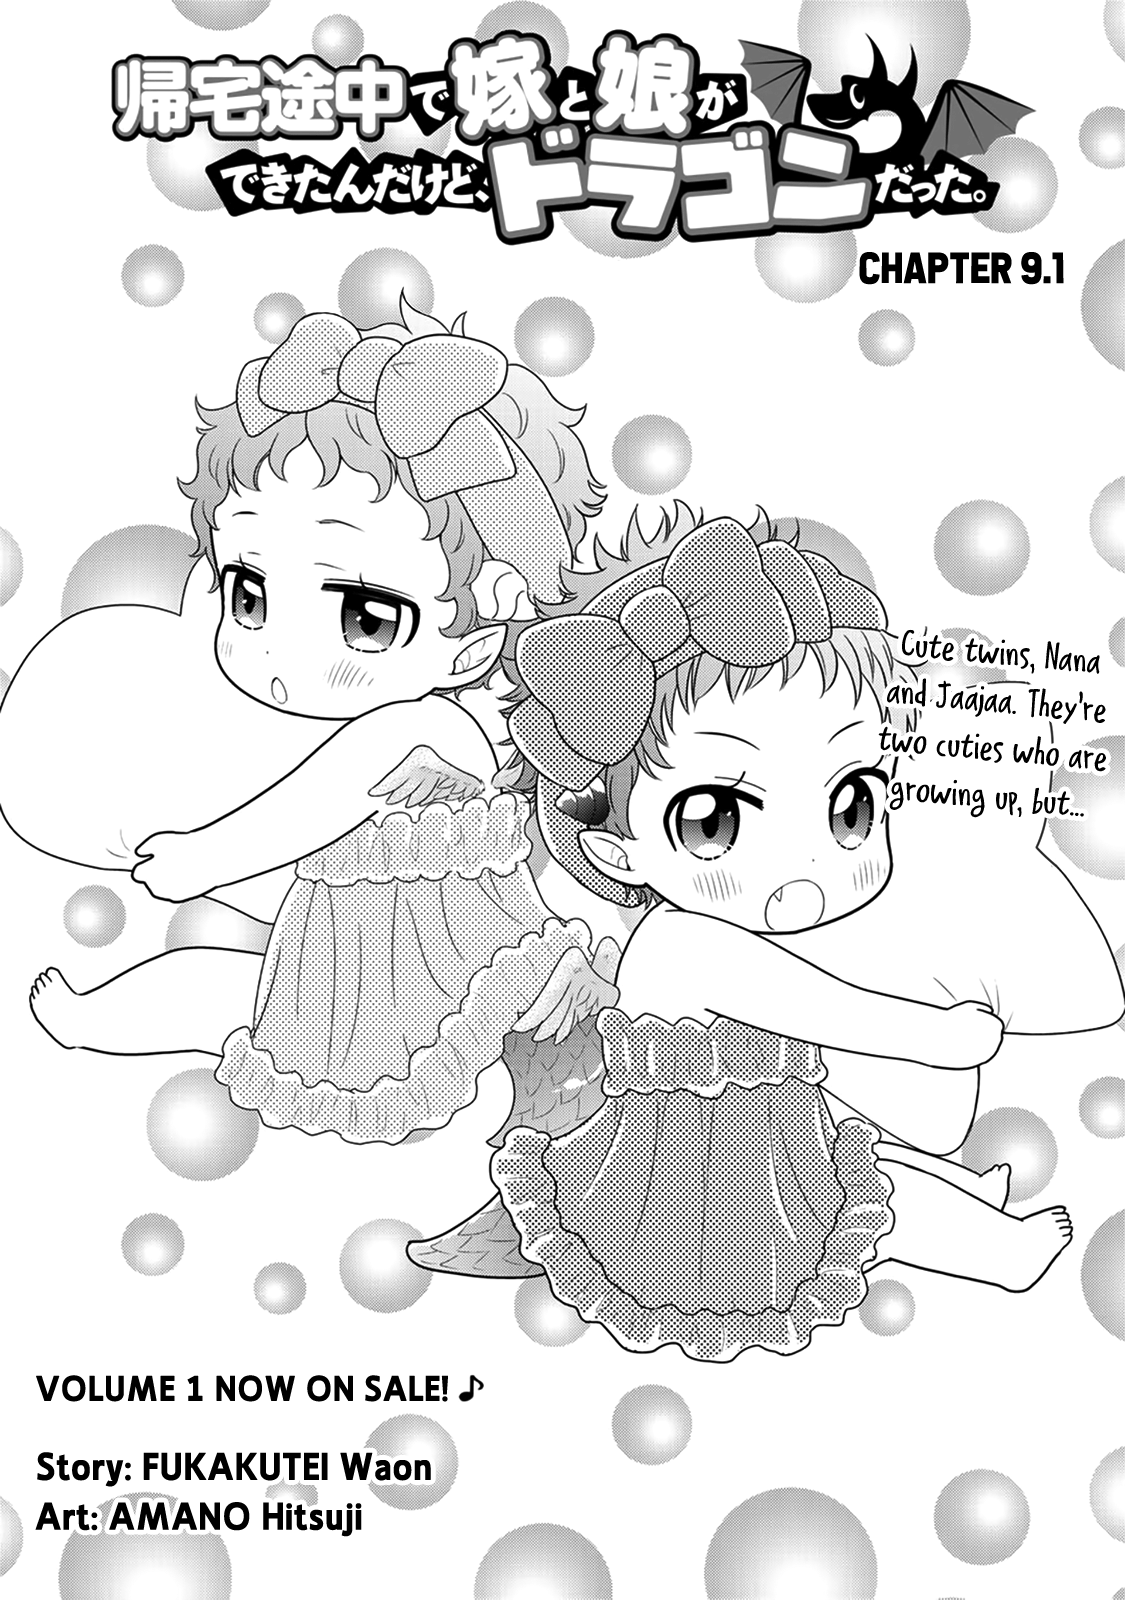 Manga On The Way Home, I Got A Bride And Twin Daughters, But They Were Dragons - Chapter 9.1 Page 1